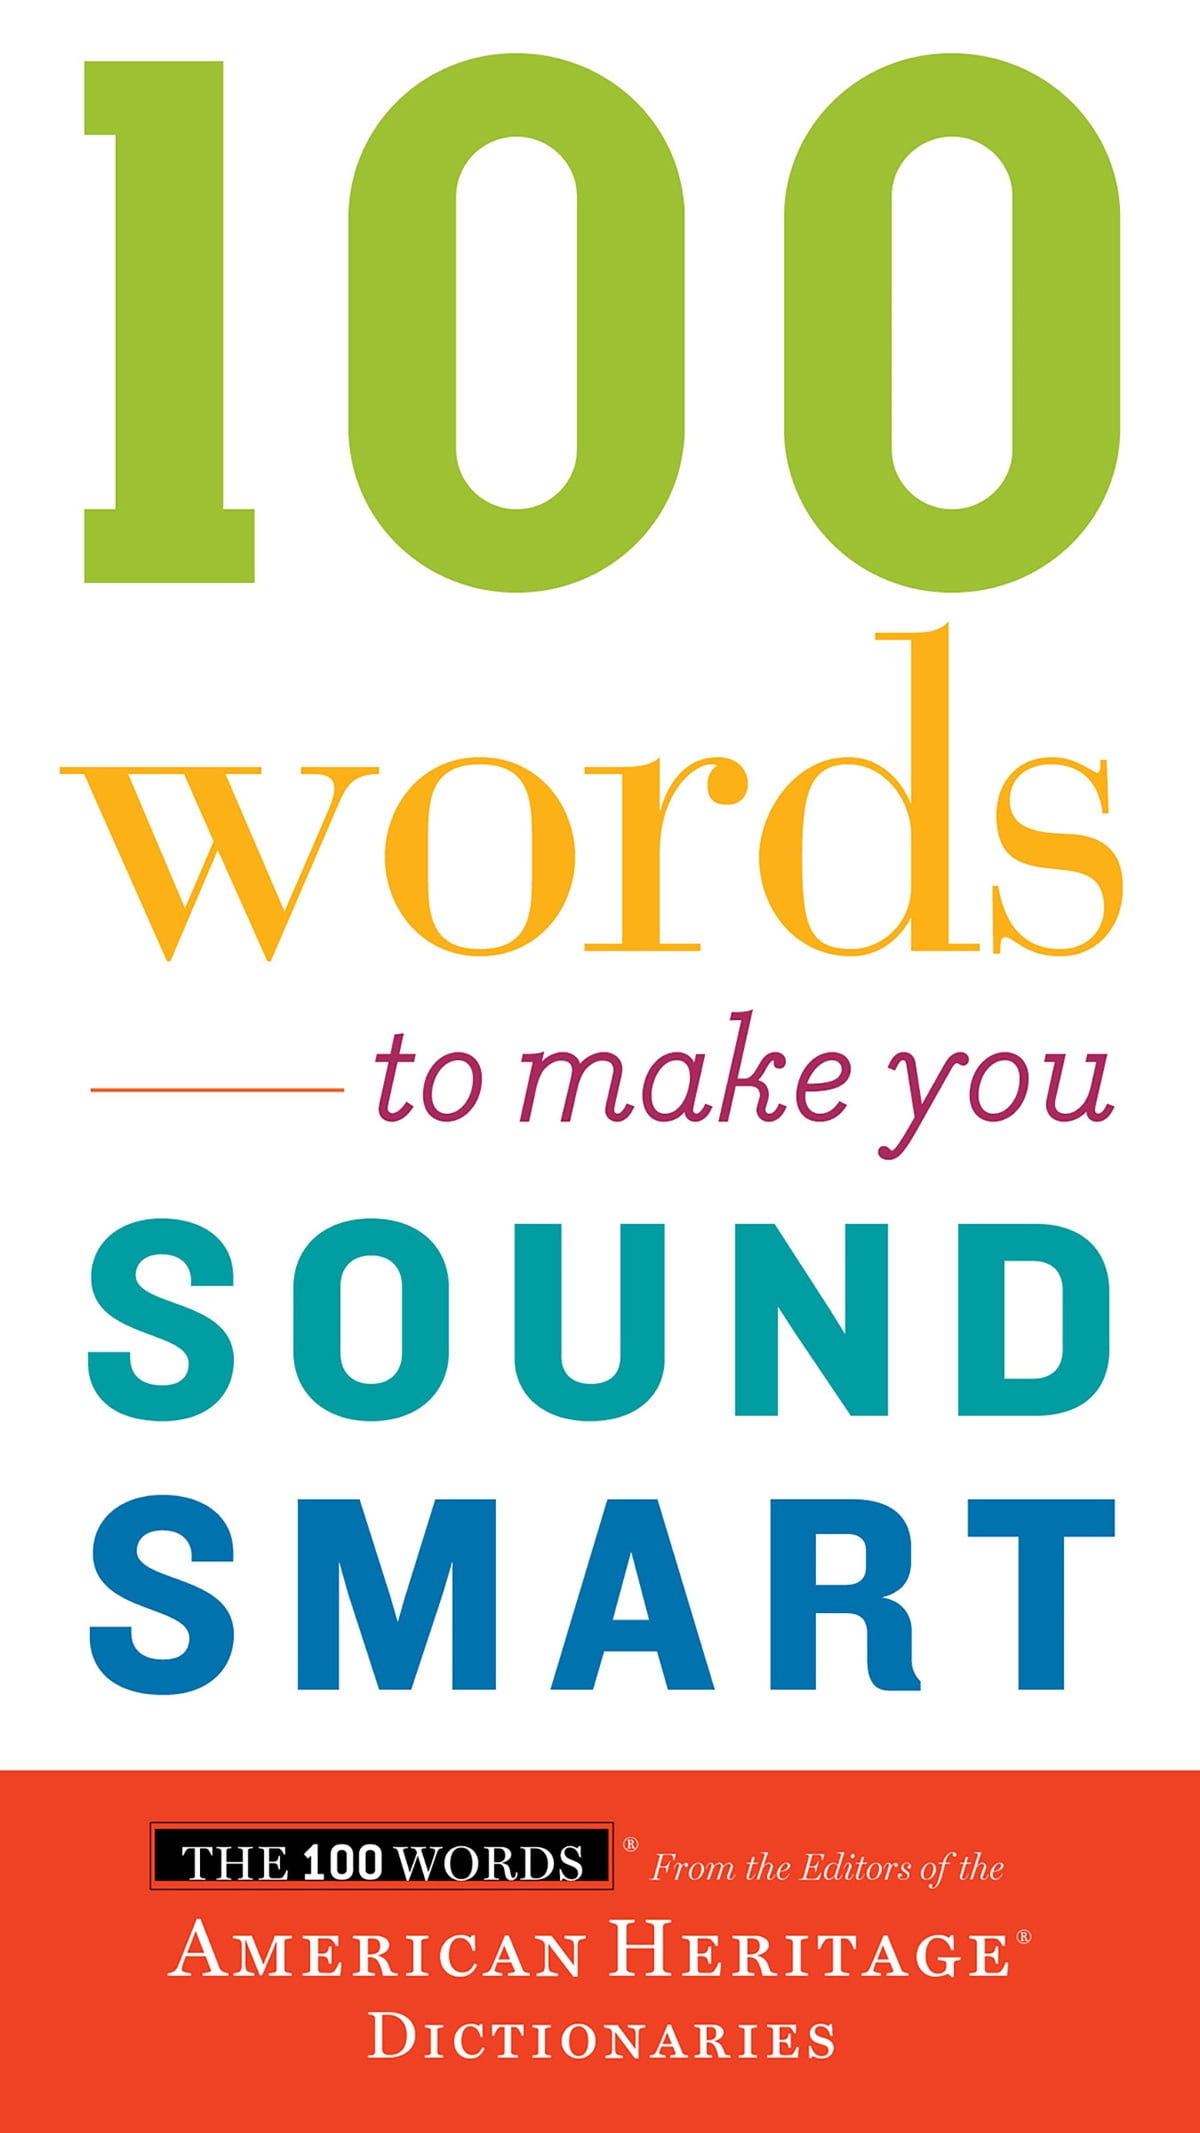 100 Words To Make You Sound Smart eBook by Editors of the American Heritage  Dictionaries - 9780547350189 | Rakuten Kobo